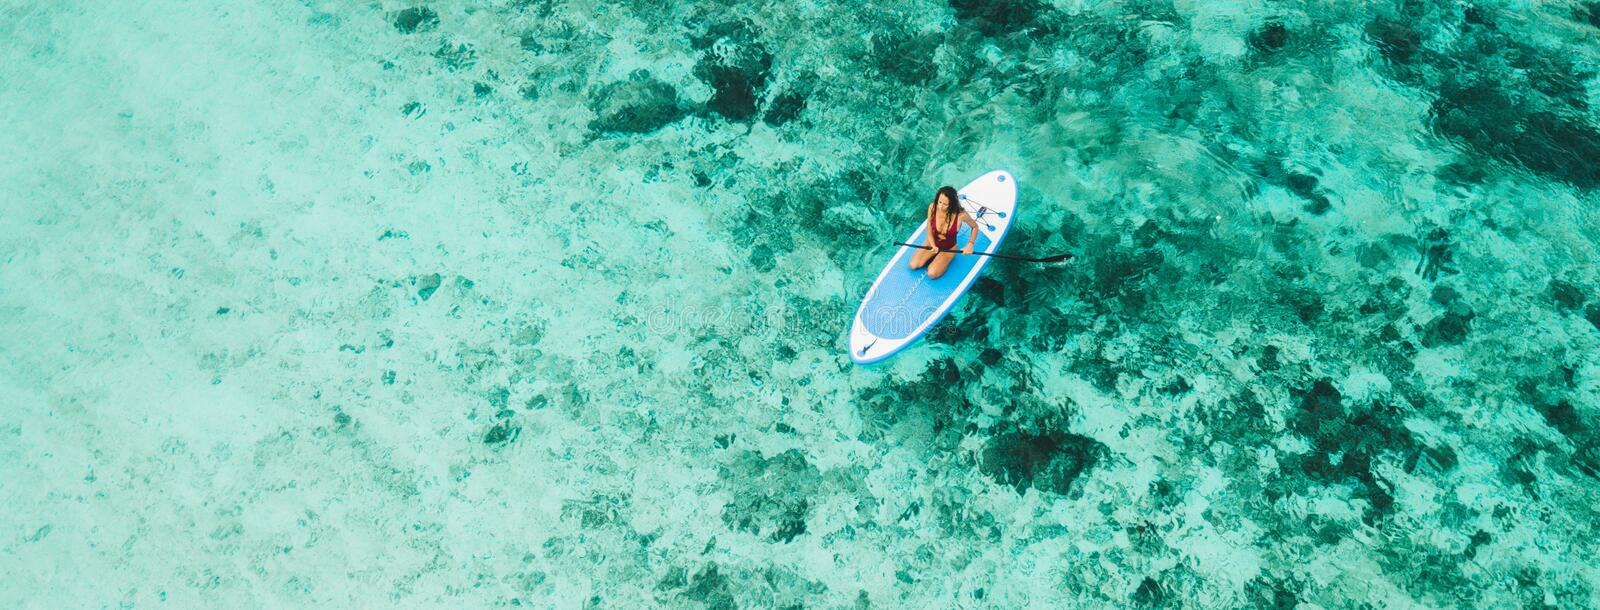 Woman sitting on sup board and enjoying coral reef royalty free stock photography